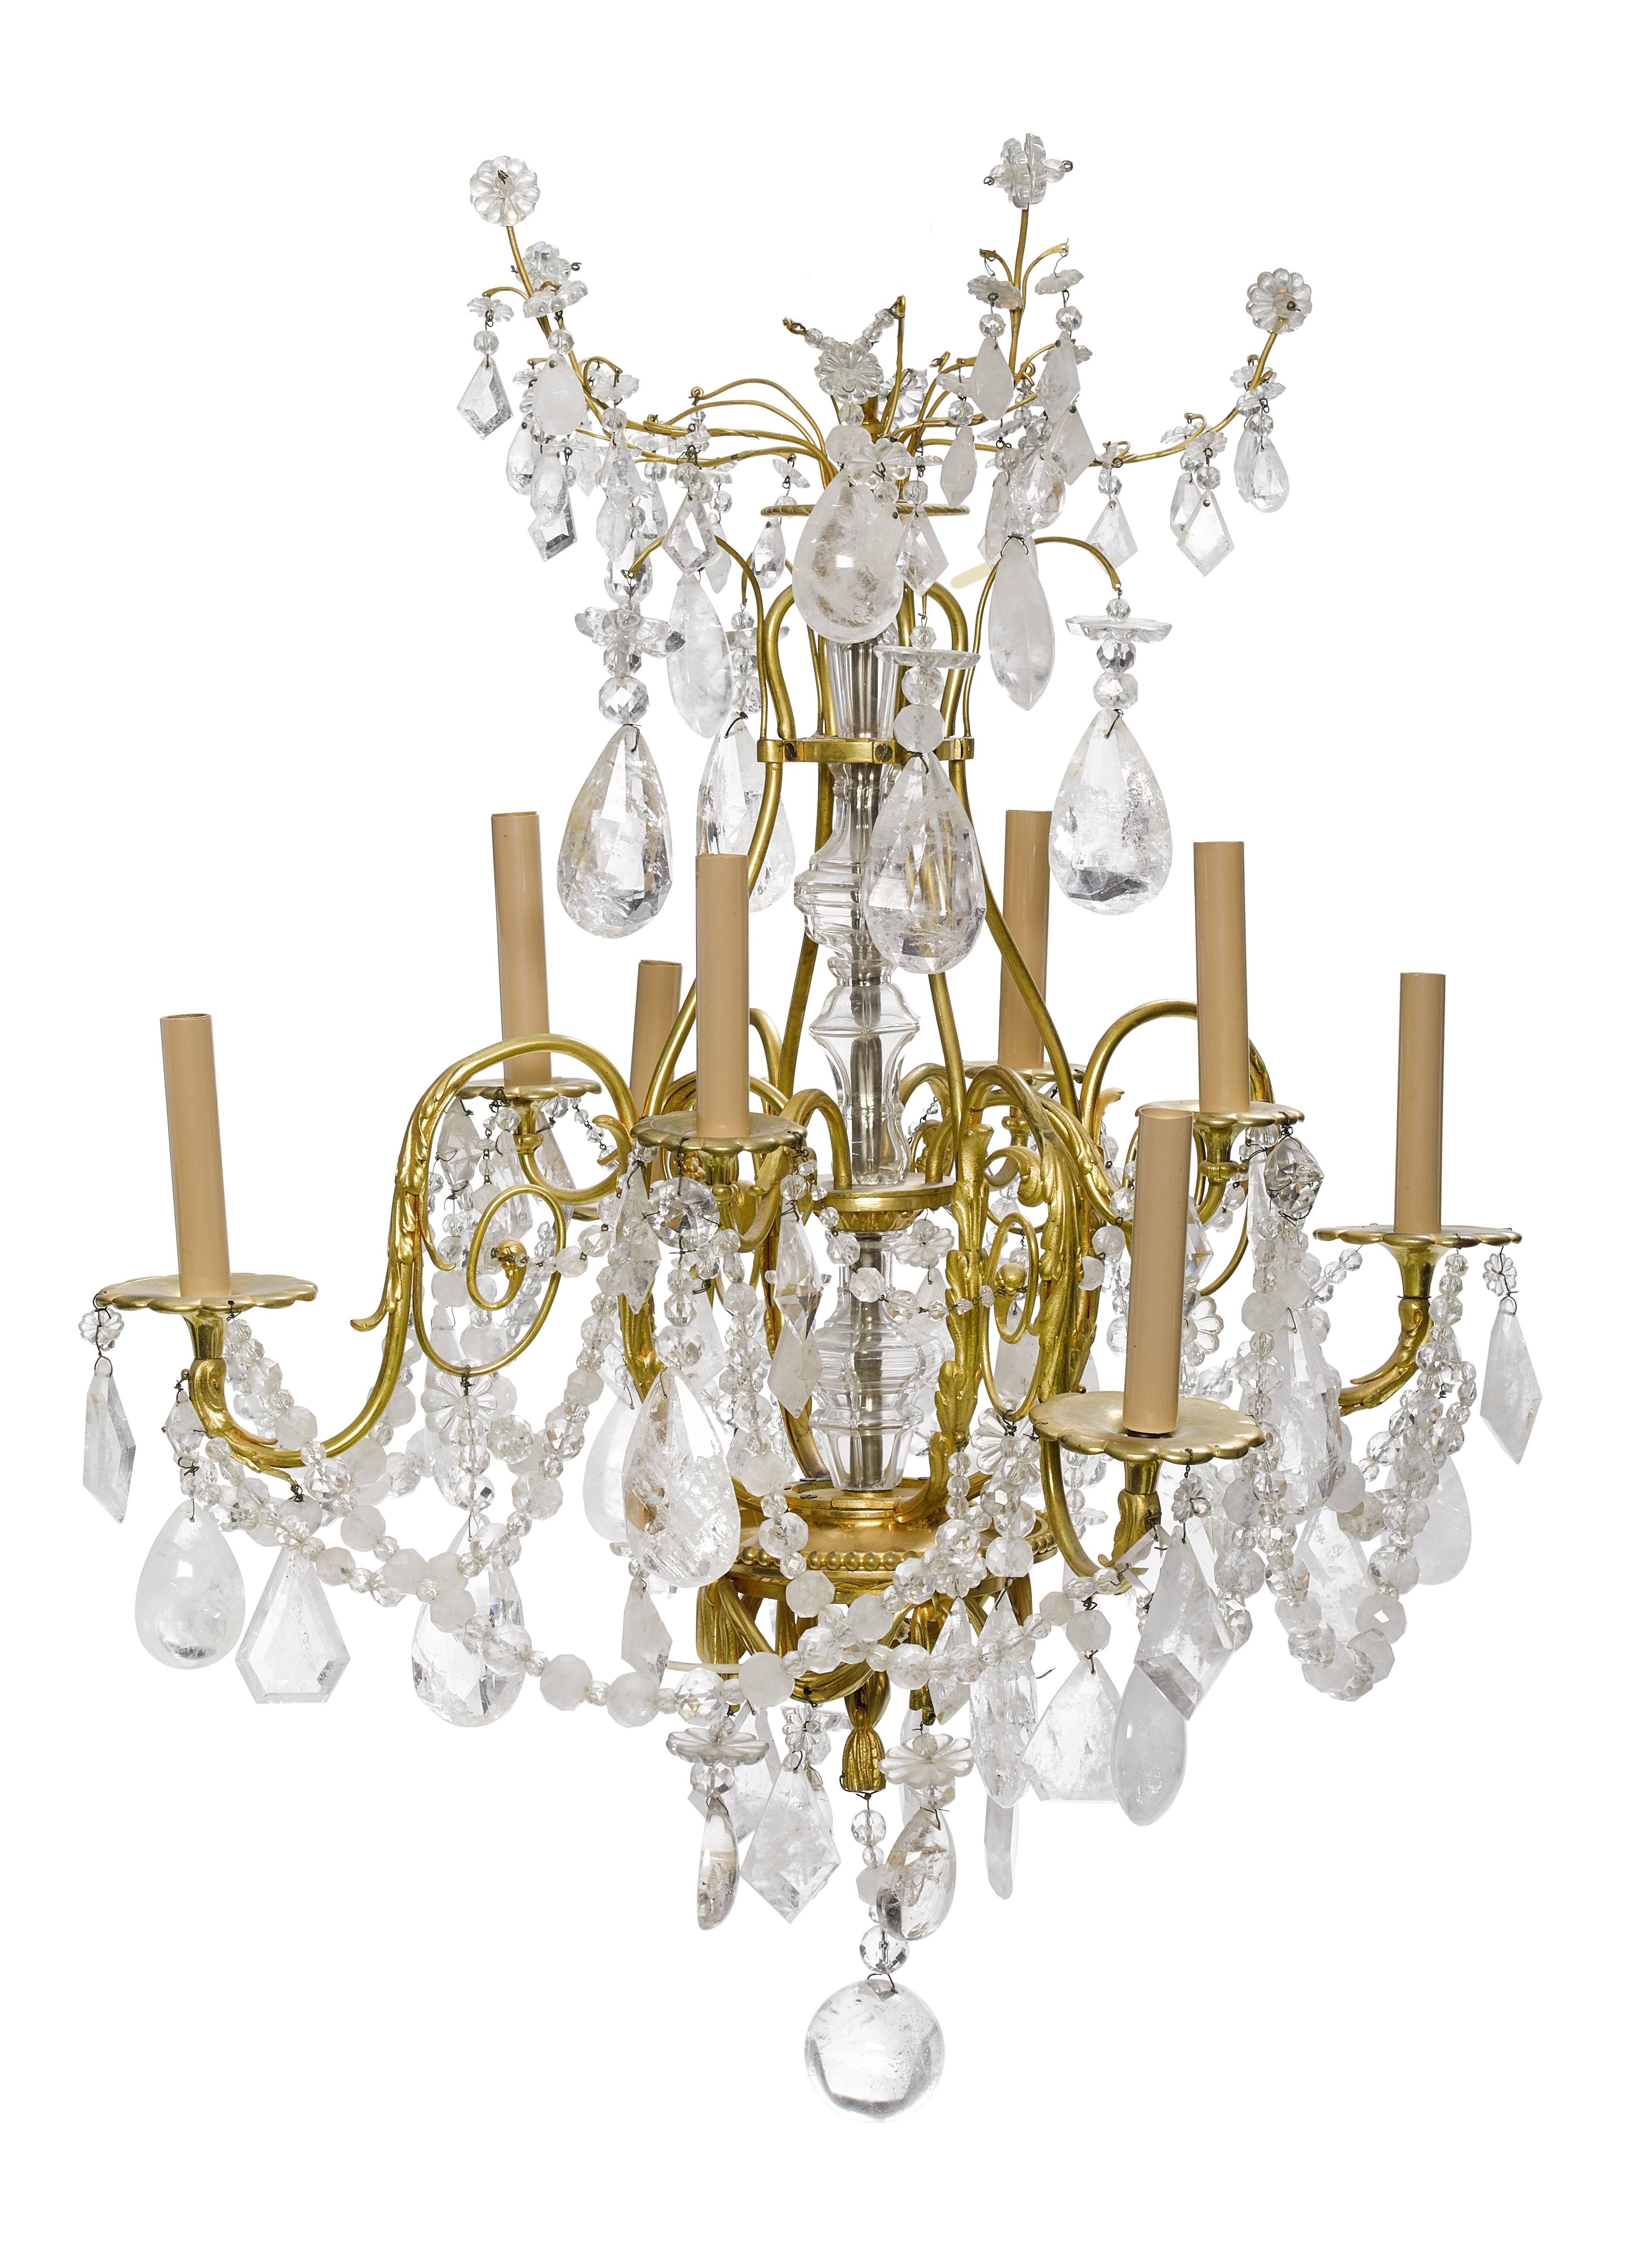 Lot 286 - A French gilt bronze and rock crystal eight light chandelier